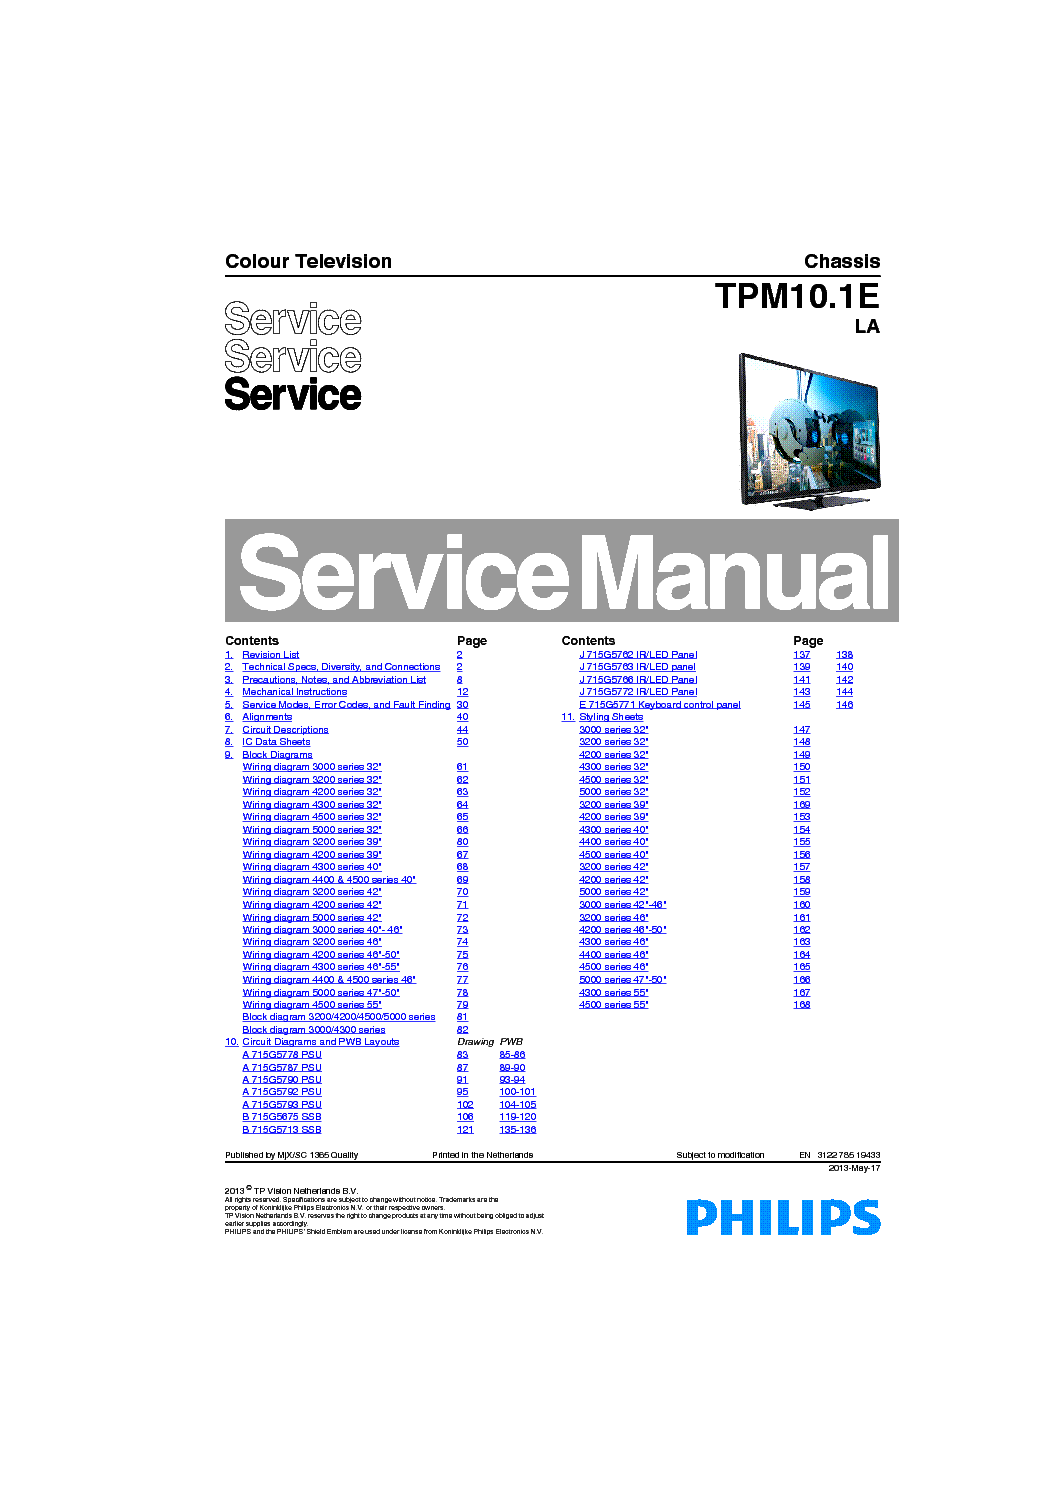 PHILIPS CHASSIS TPM10 1E LA service manual (1st page)